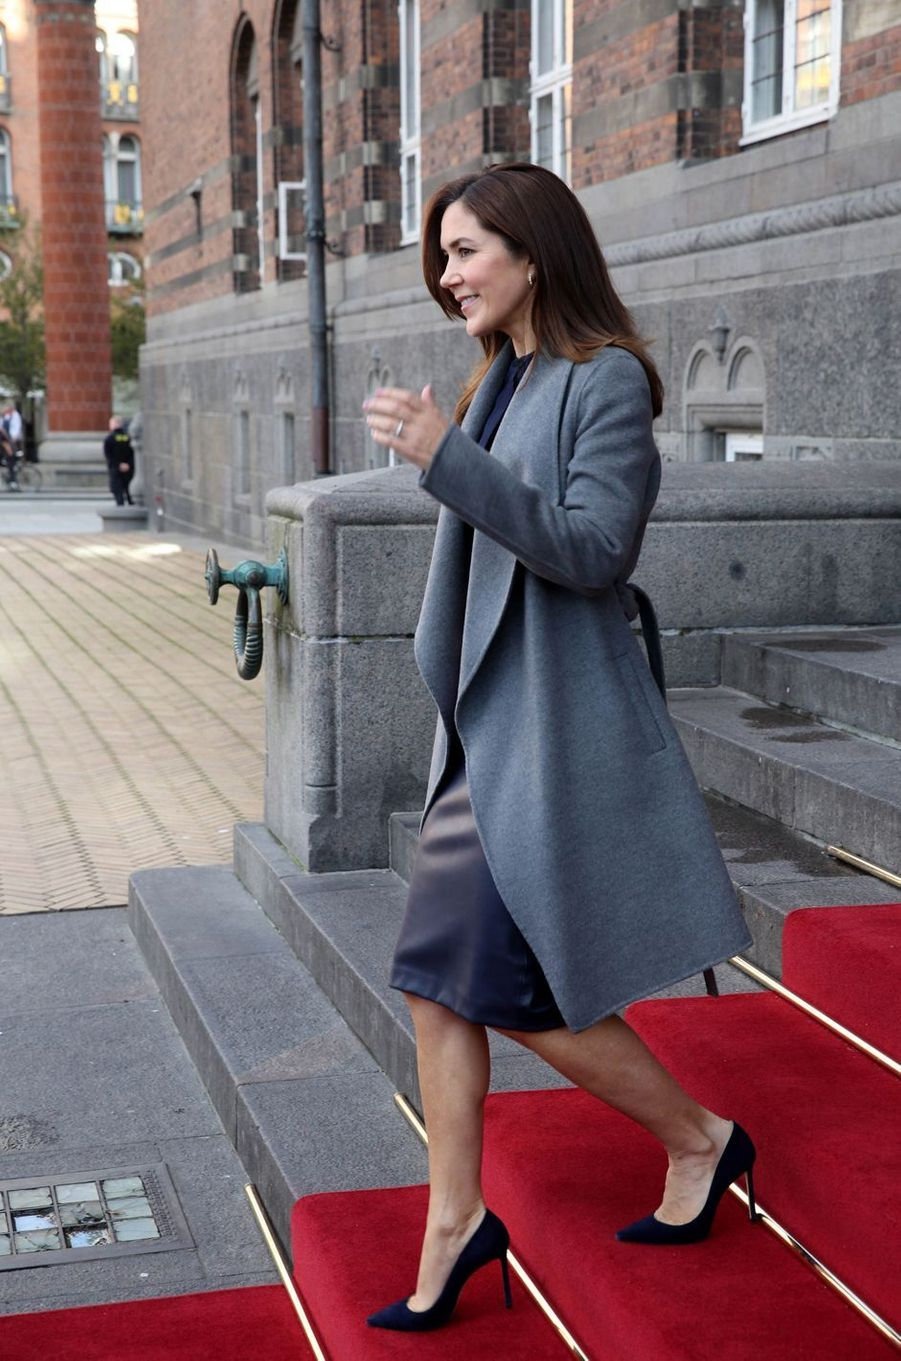 La princesse Mary de Danemark à Copenhague, le 28 octobre 2019